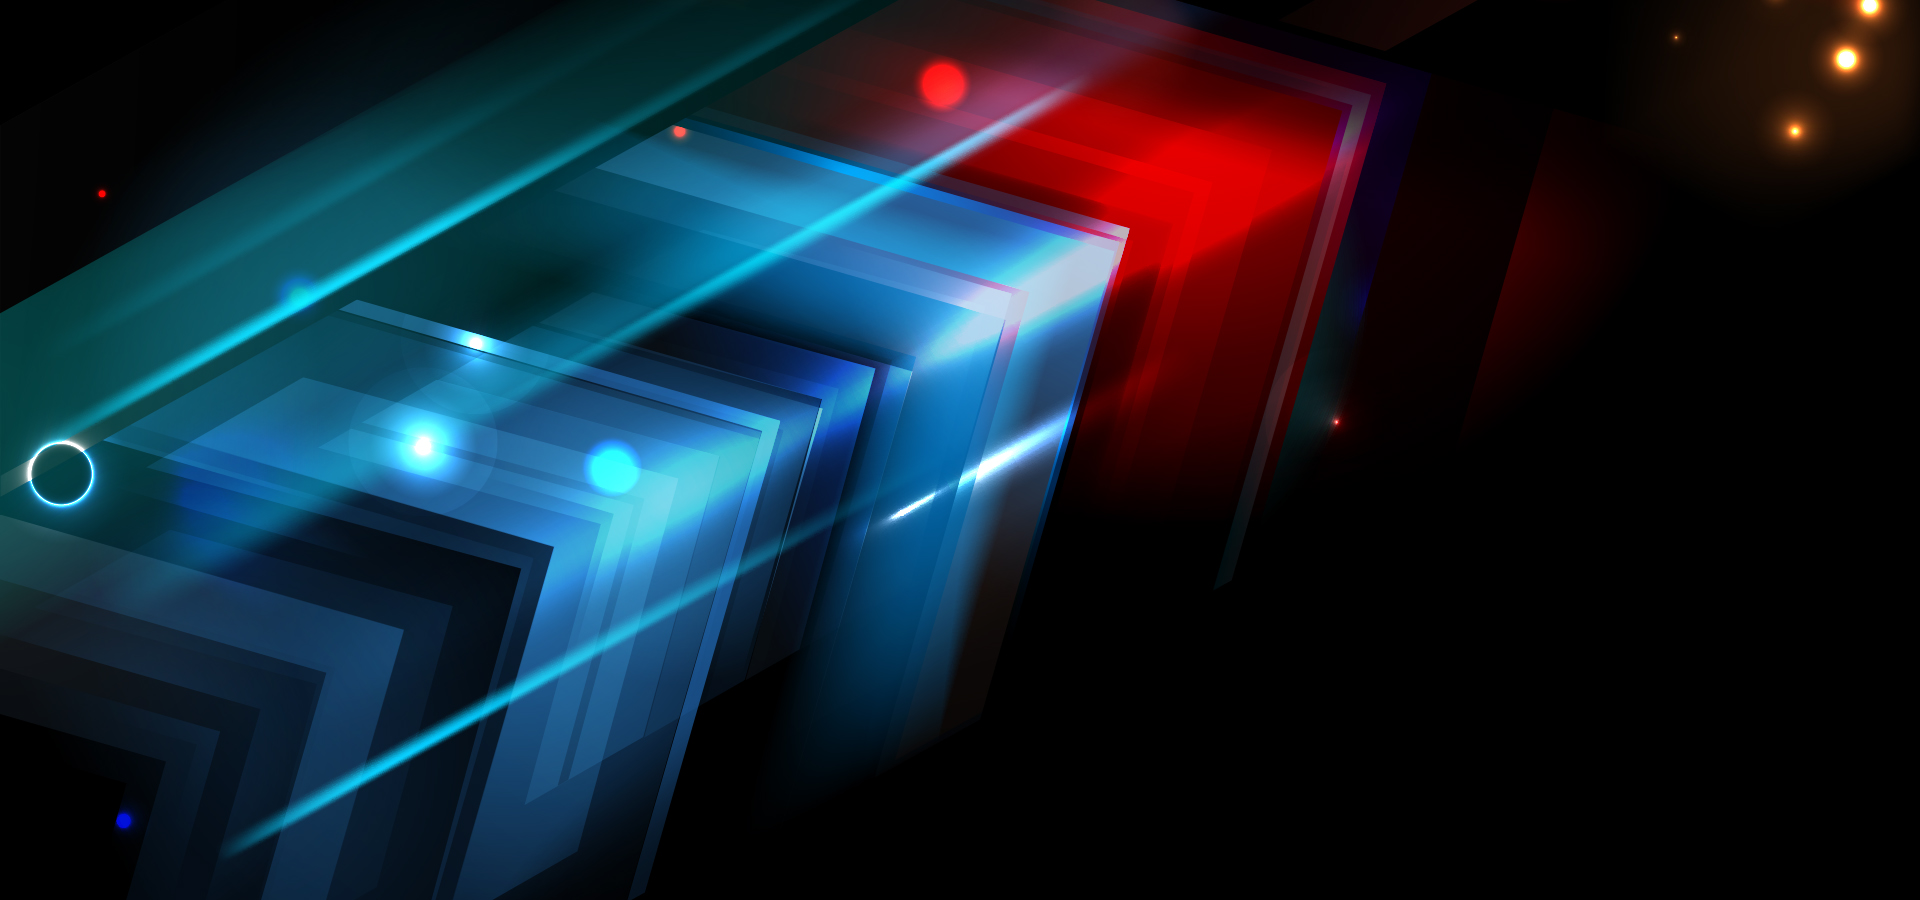 abstract dynamic arrow business technology background  abstract  blue  arrow background image